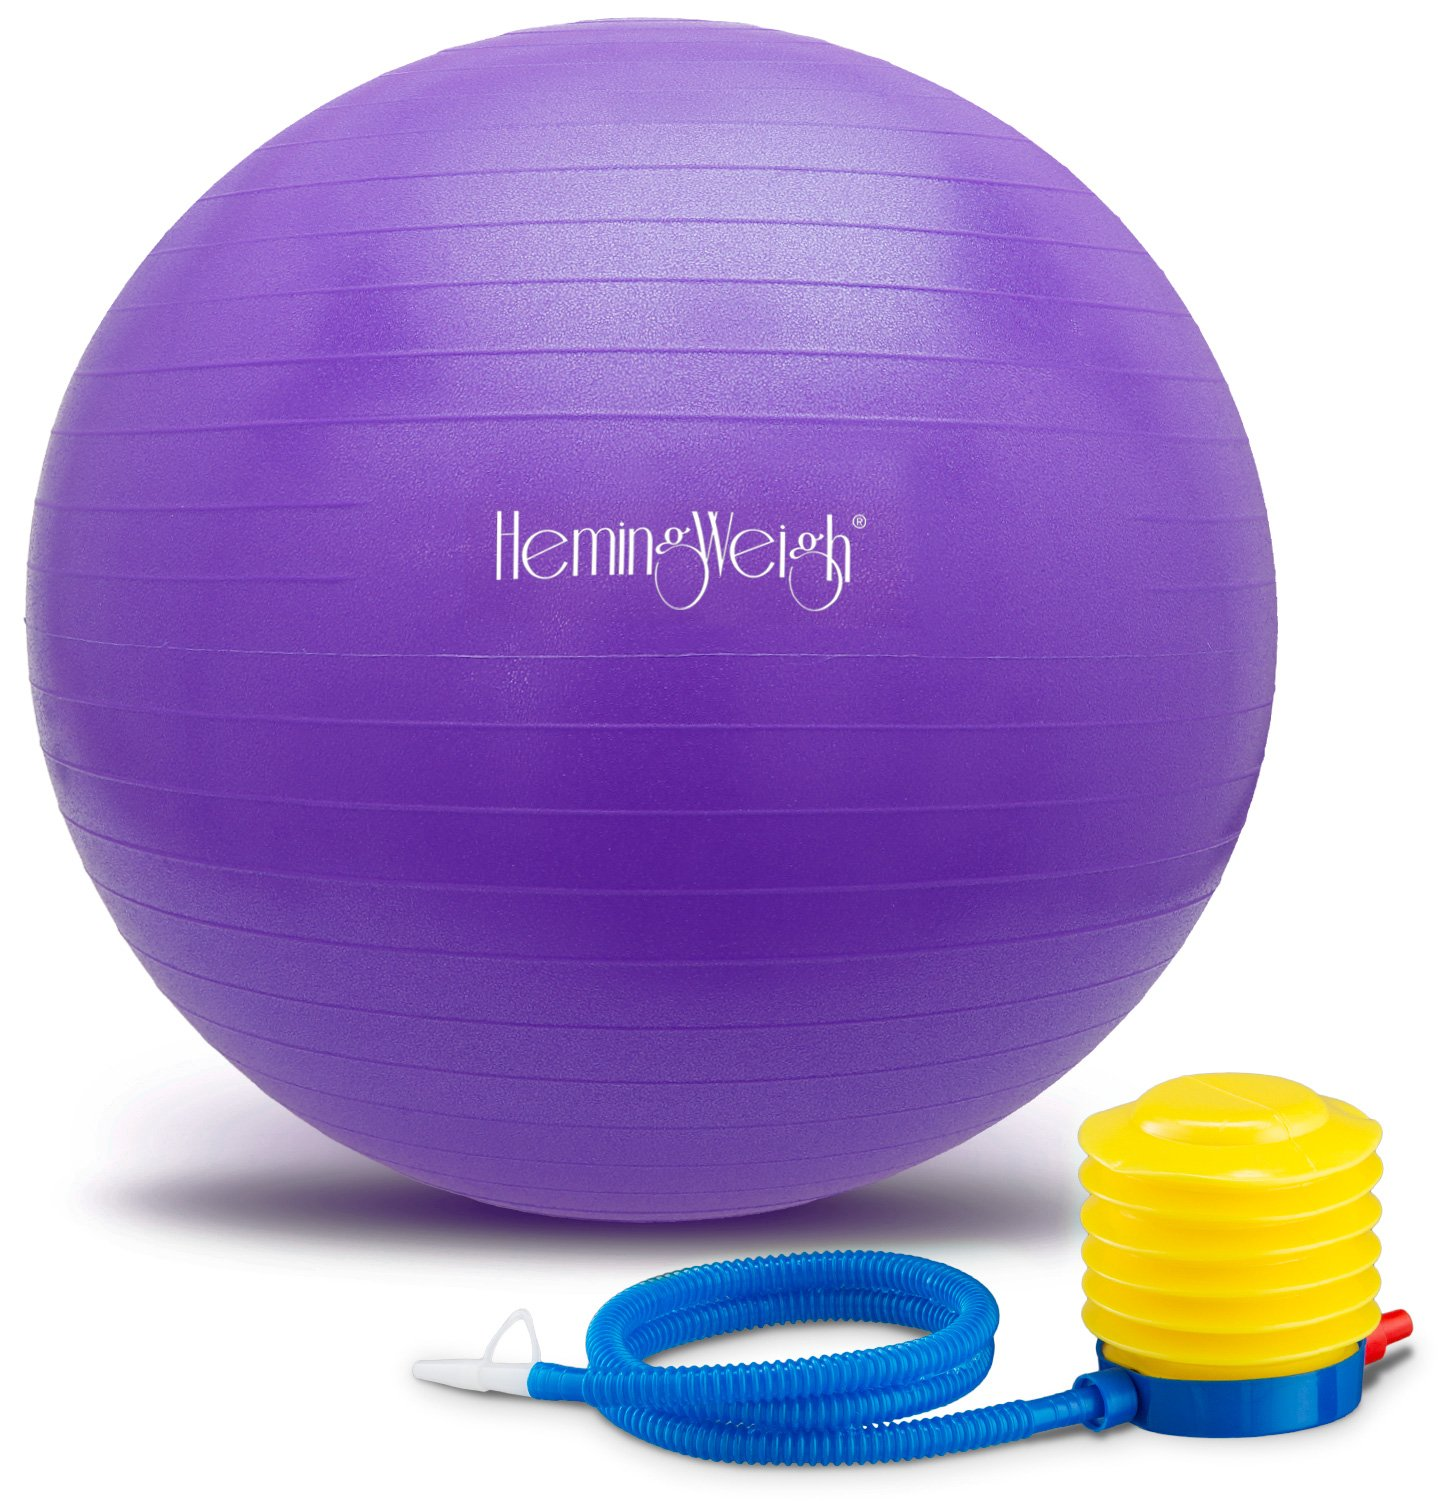 HemingWeigh Static Strength Exercise Stability Ball with Foot Pump | Perfect For Fitness Stability and Yoga | Helps Improve Agility, Core Strength, and Balance (Purple, 55cm) by HemingWeigh